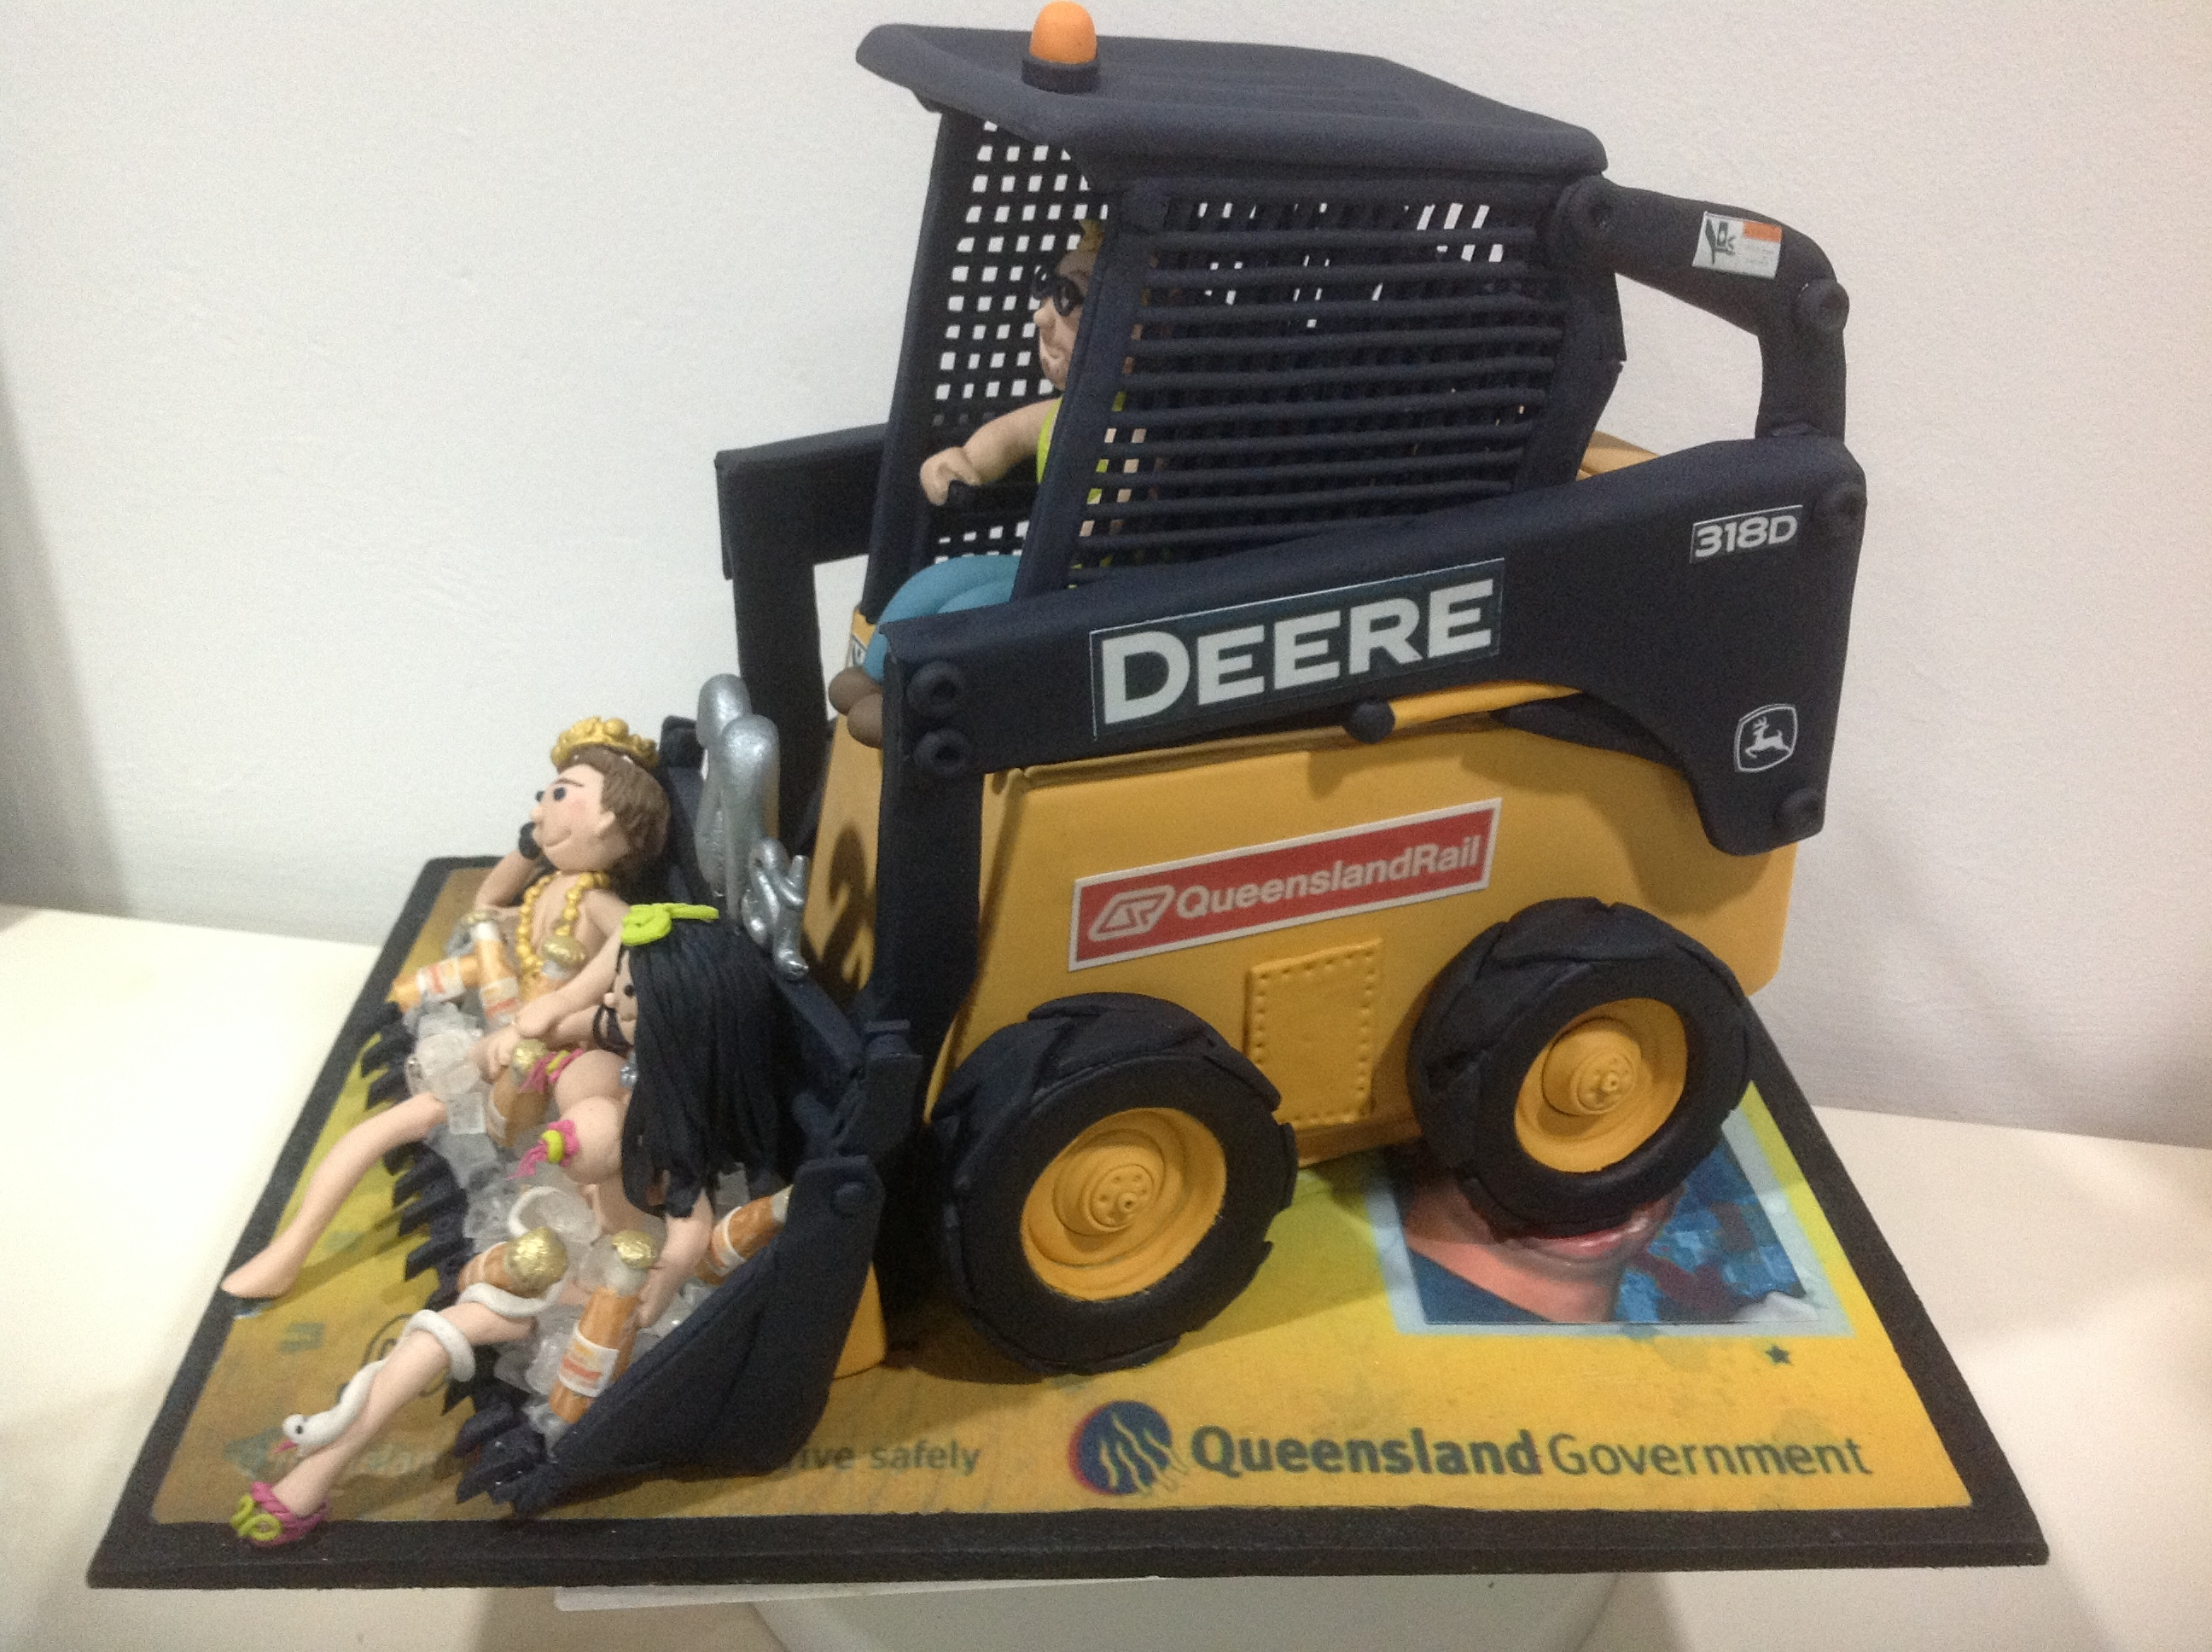 21St Birthday Cake For Man With Him Sitting In Bucket With Best Mate